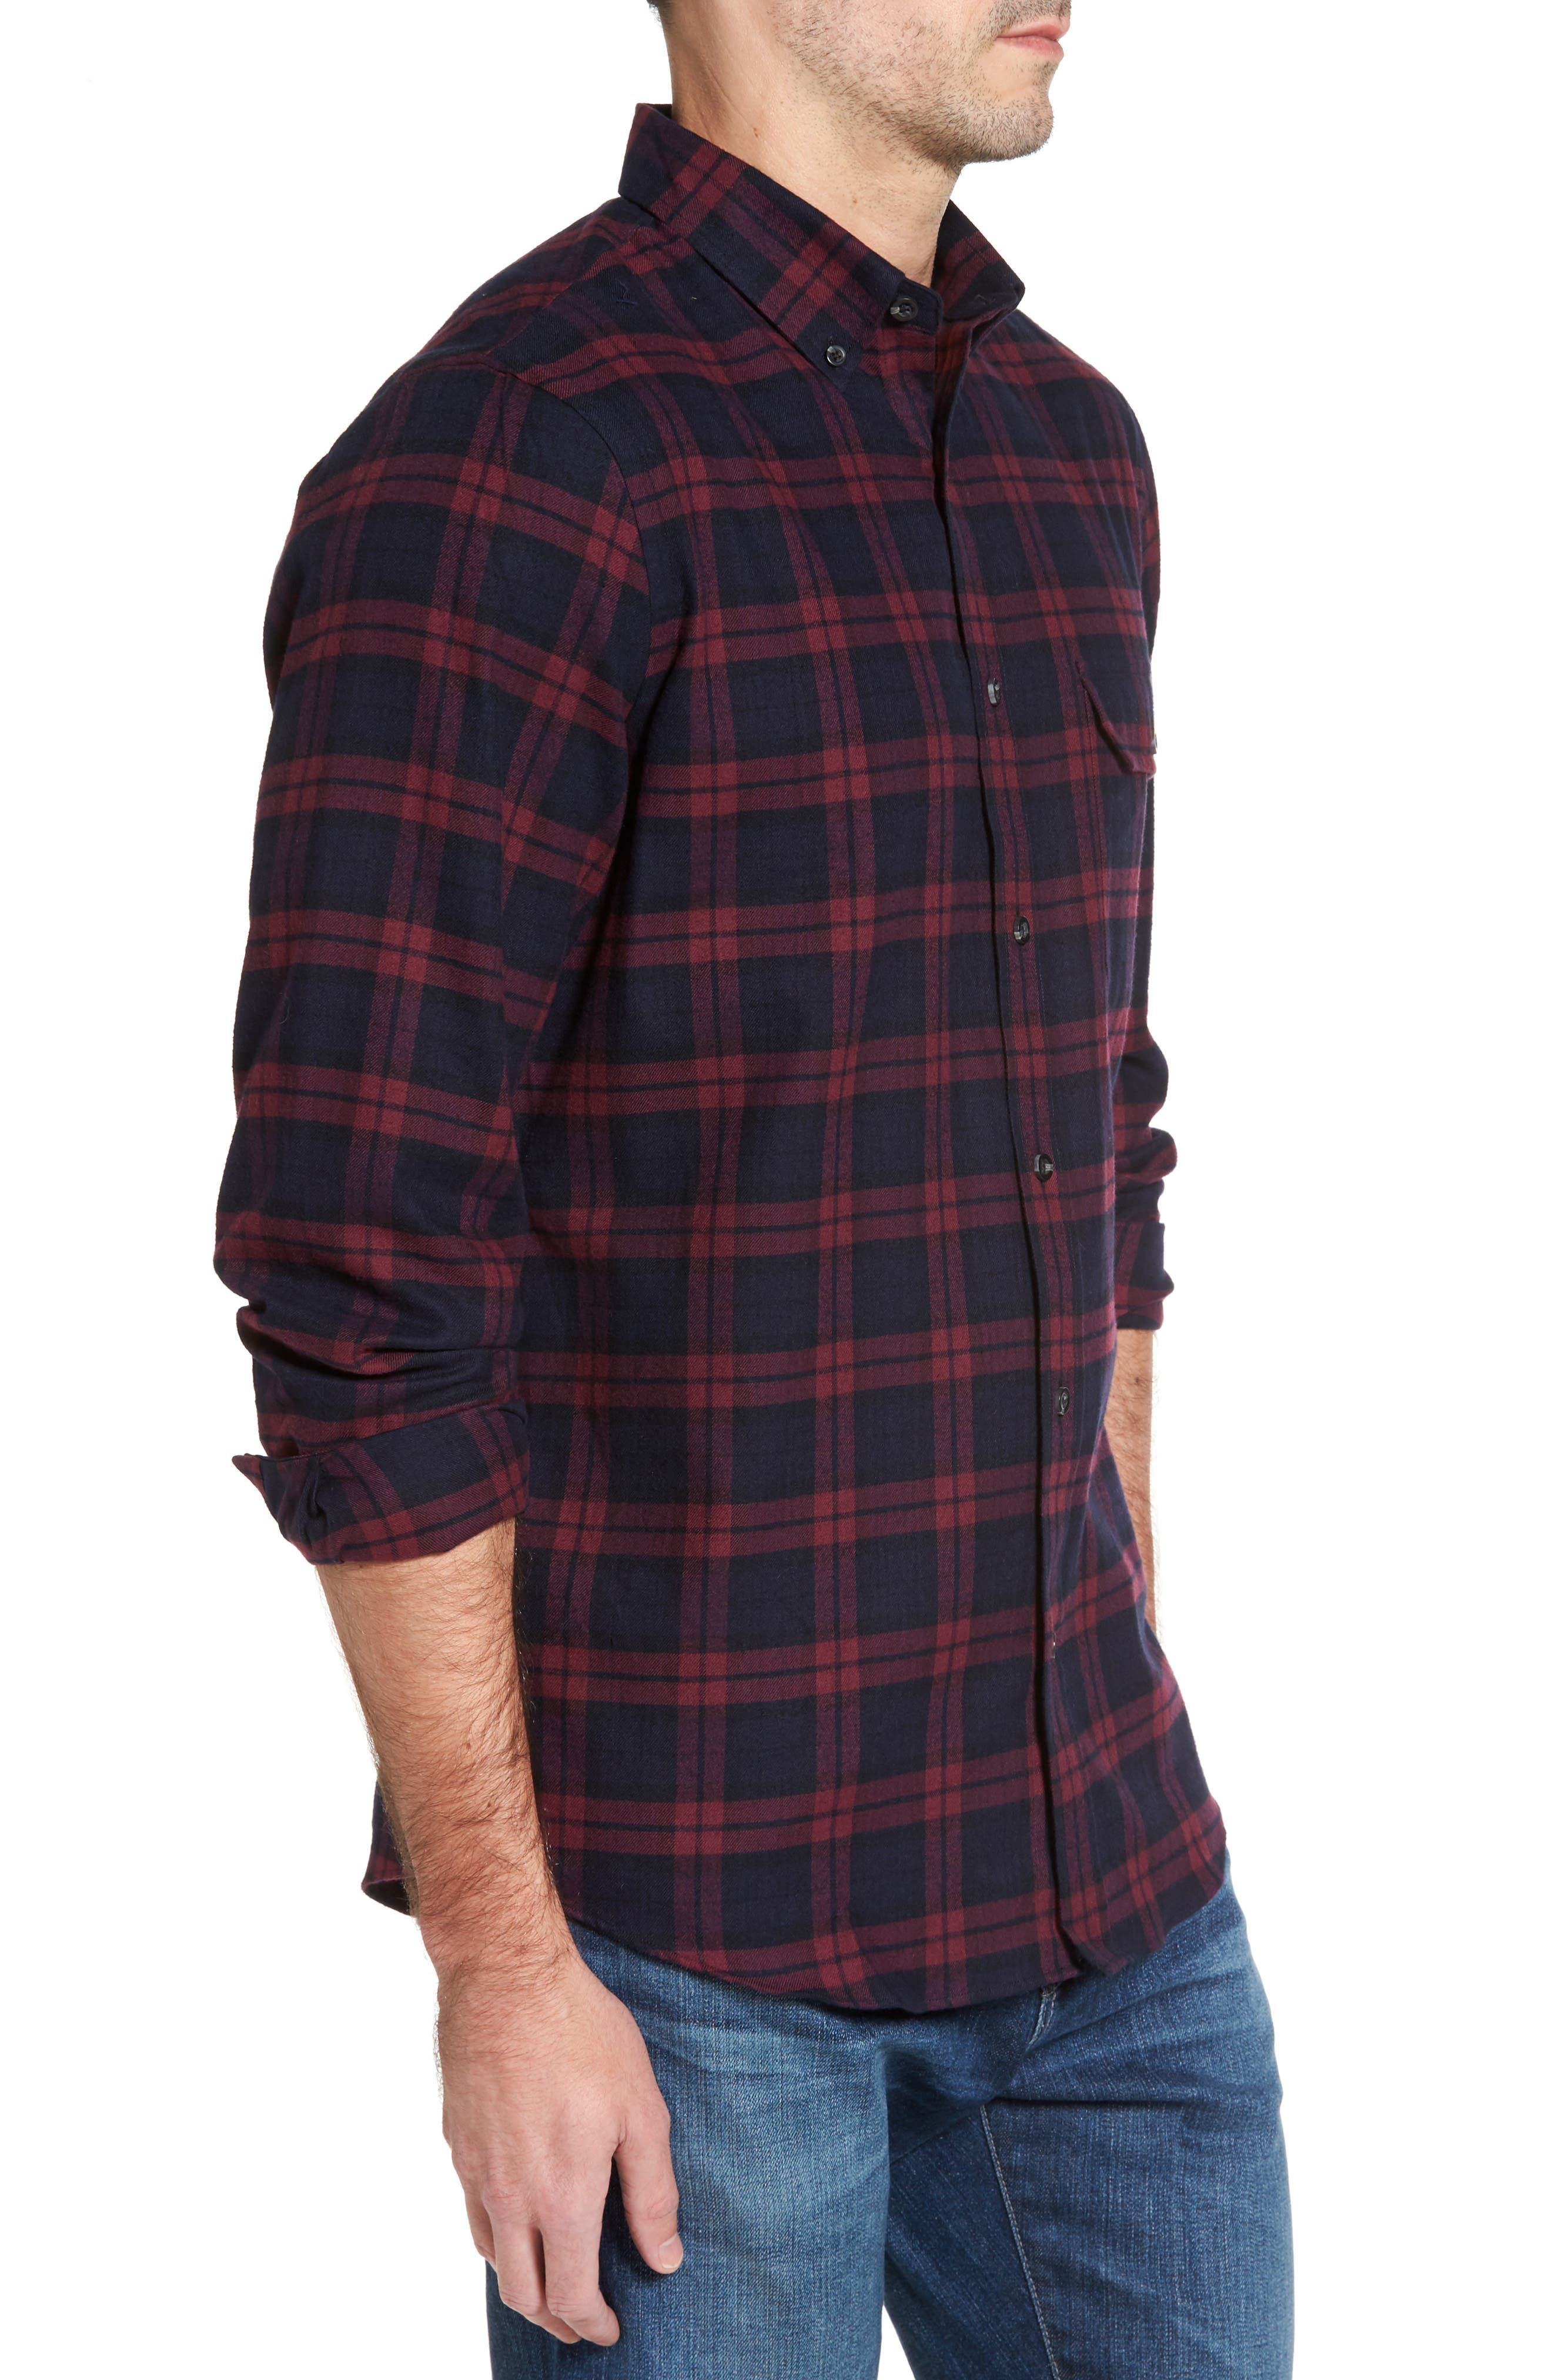 Regular Fit Plaid Sport Shirt,                             Alternate thumbnail 3, color,                             Red Chili Plaid Flannel